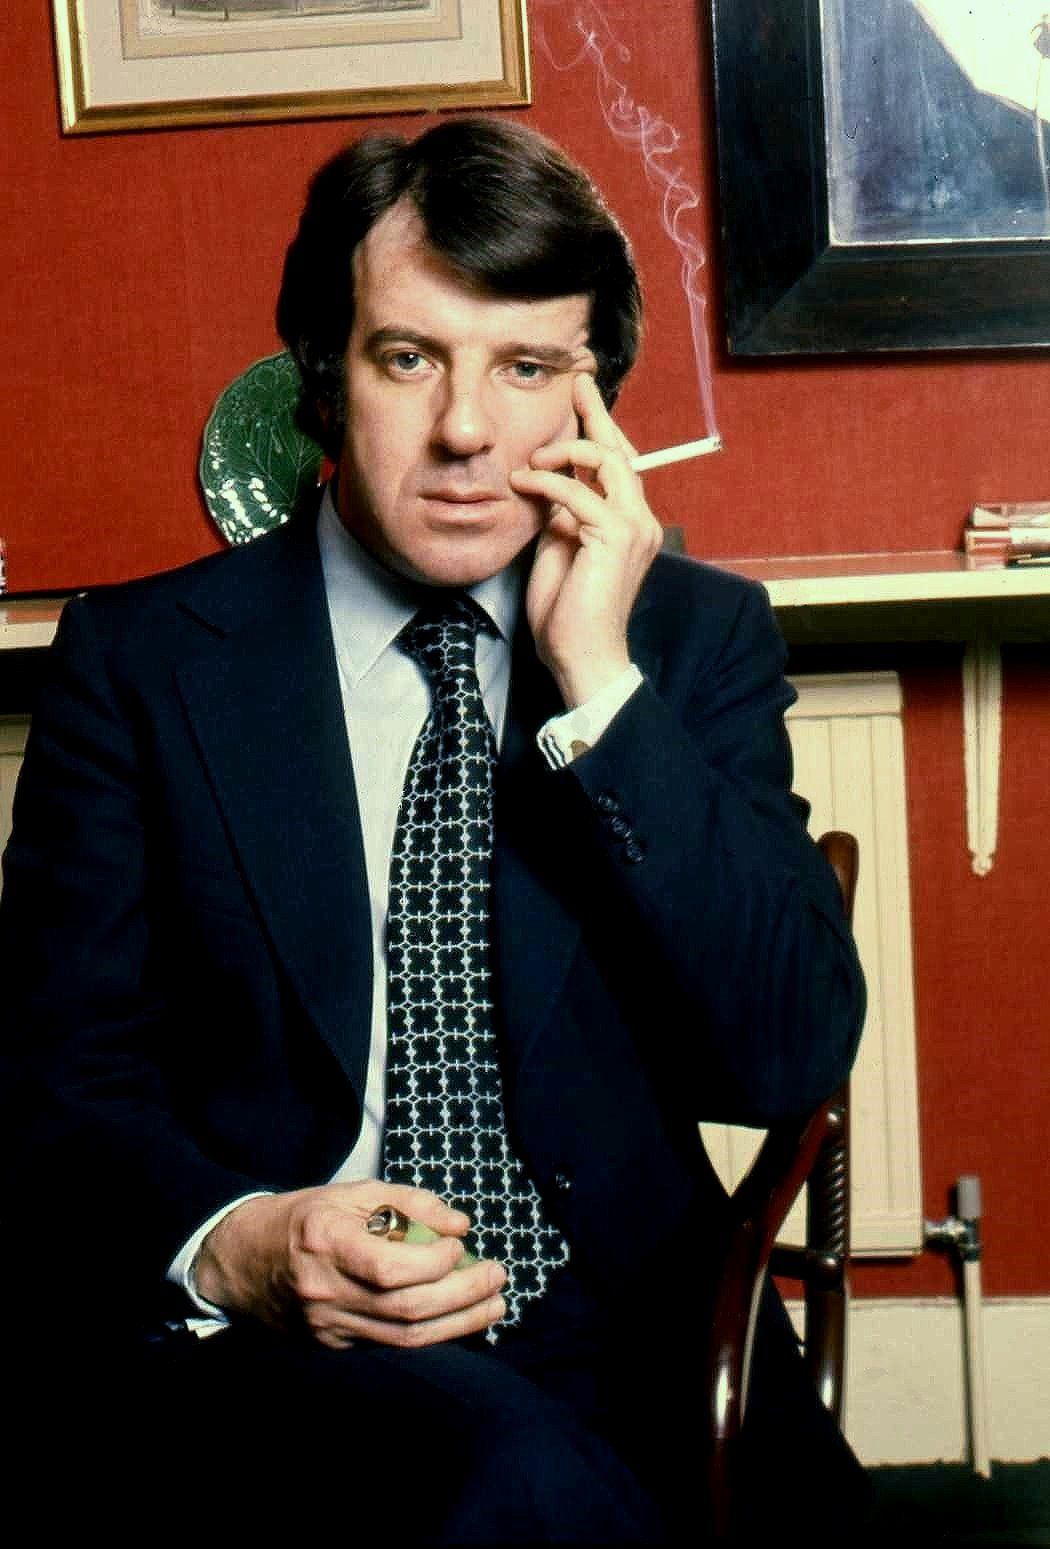 Russell Harty (5 September 1934 – 8 June 1988) was a British television presenter of arts programmes and chat shows.  Portrait of Russel Harty at his home Lexham Gardens Kensington London, 1973, by Allan Warren.